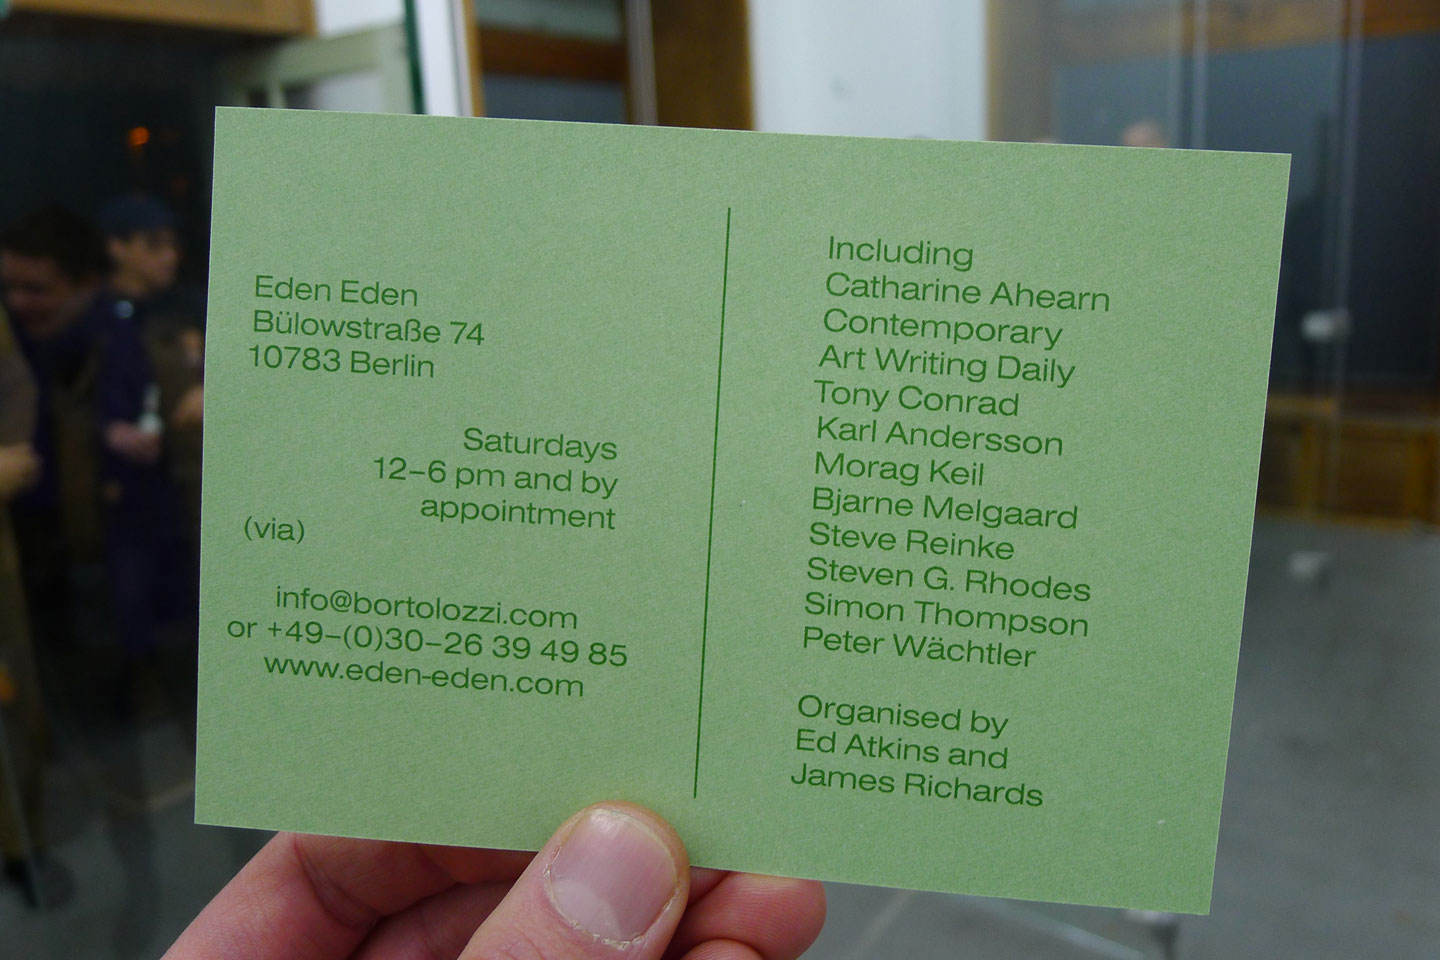 Exhibition credits and info